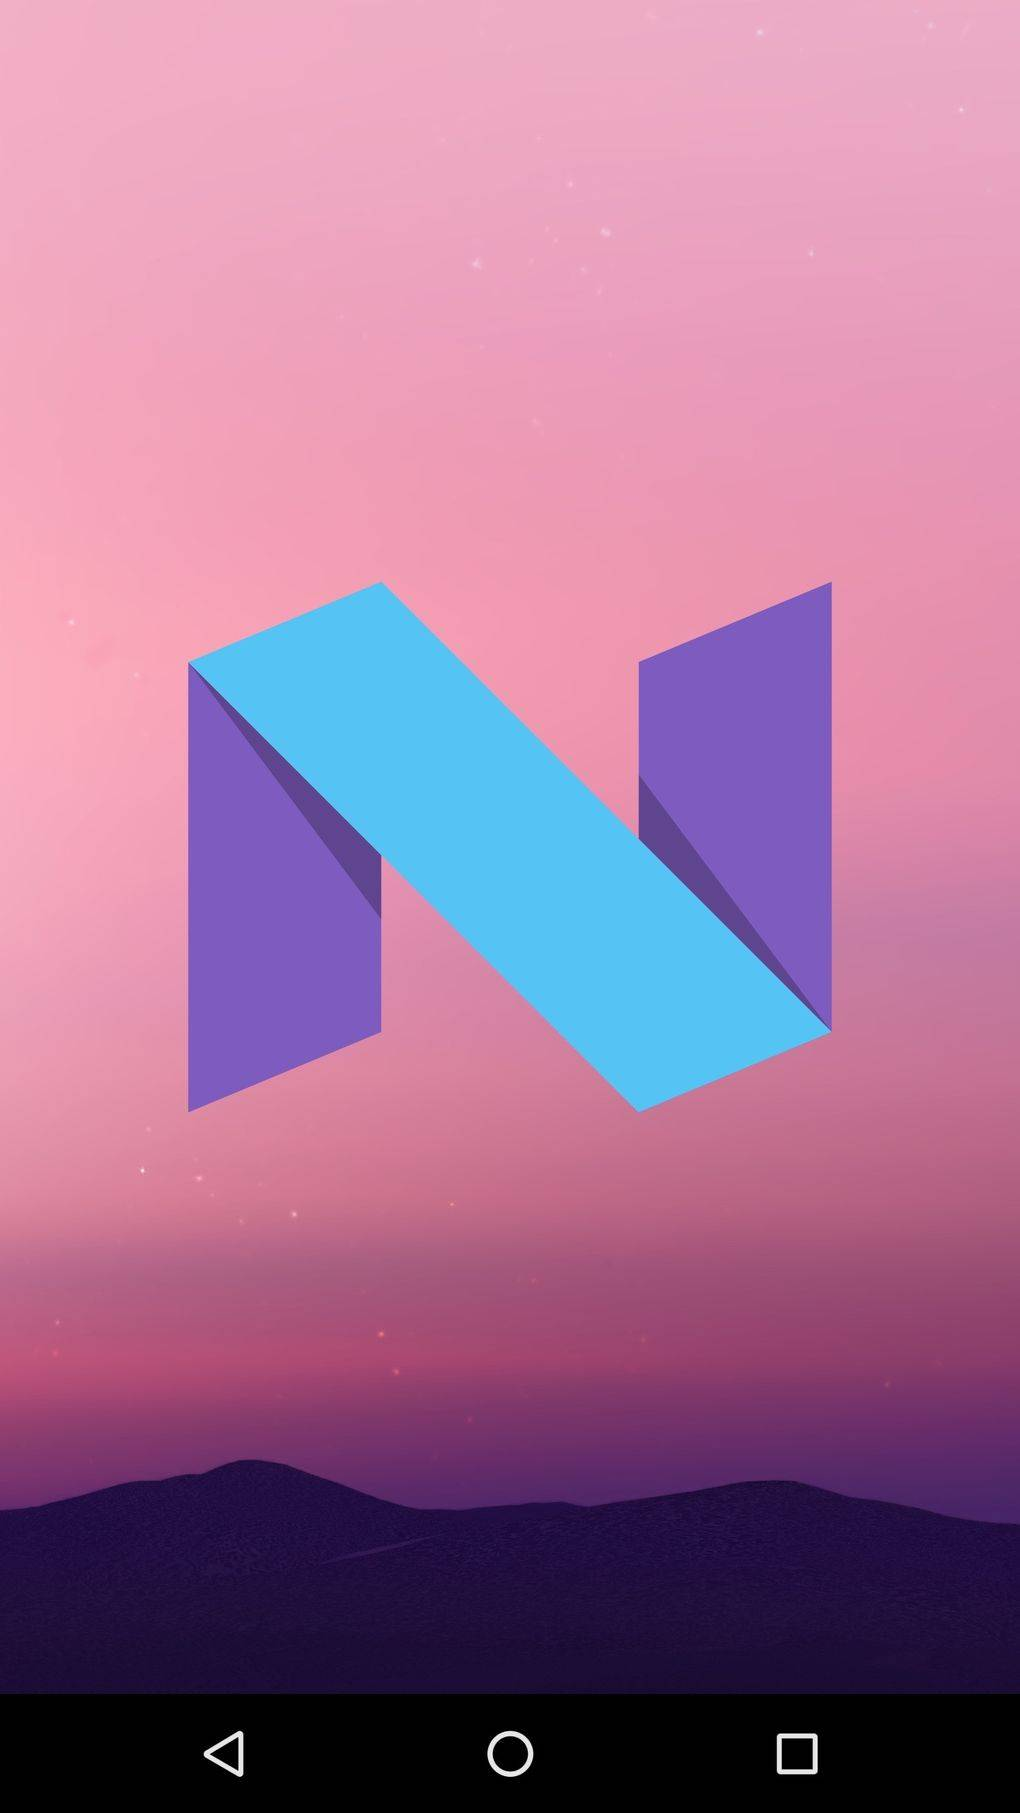 androidn2-8143f92d59ee35c565f8d6c341c97f9a.jpg